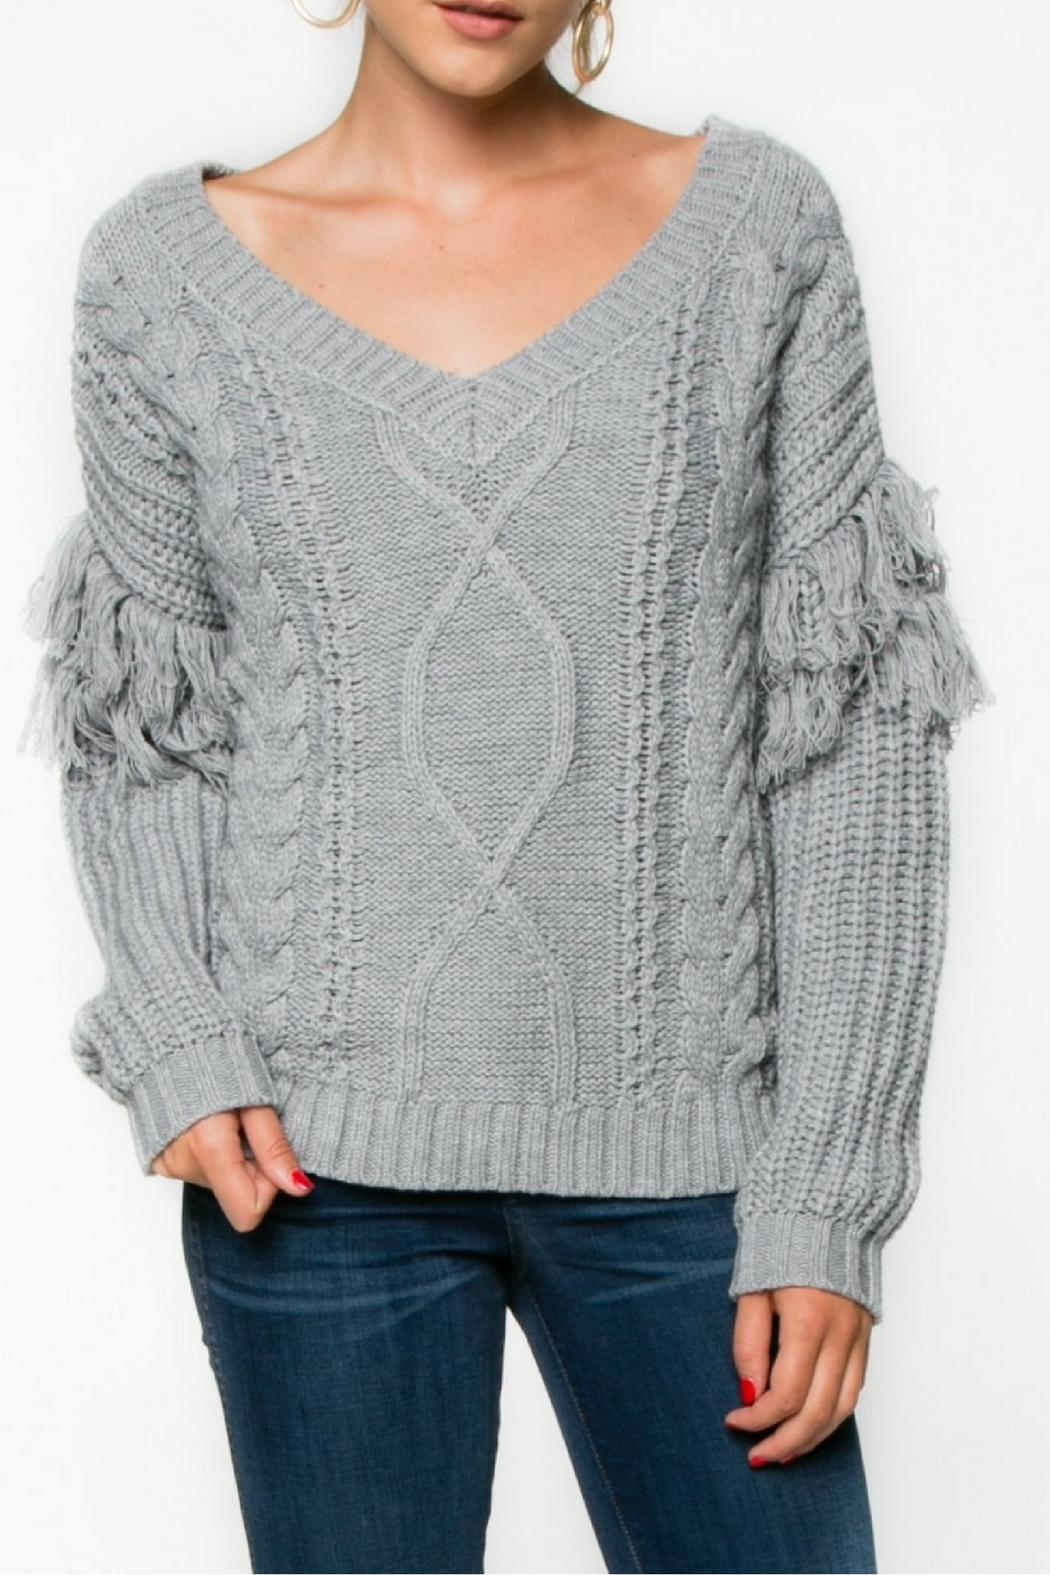 Everly Gray Fringe Sweater - Main Image